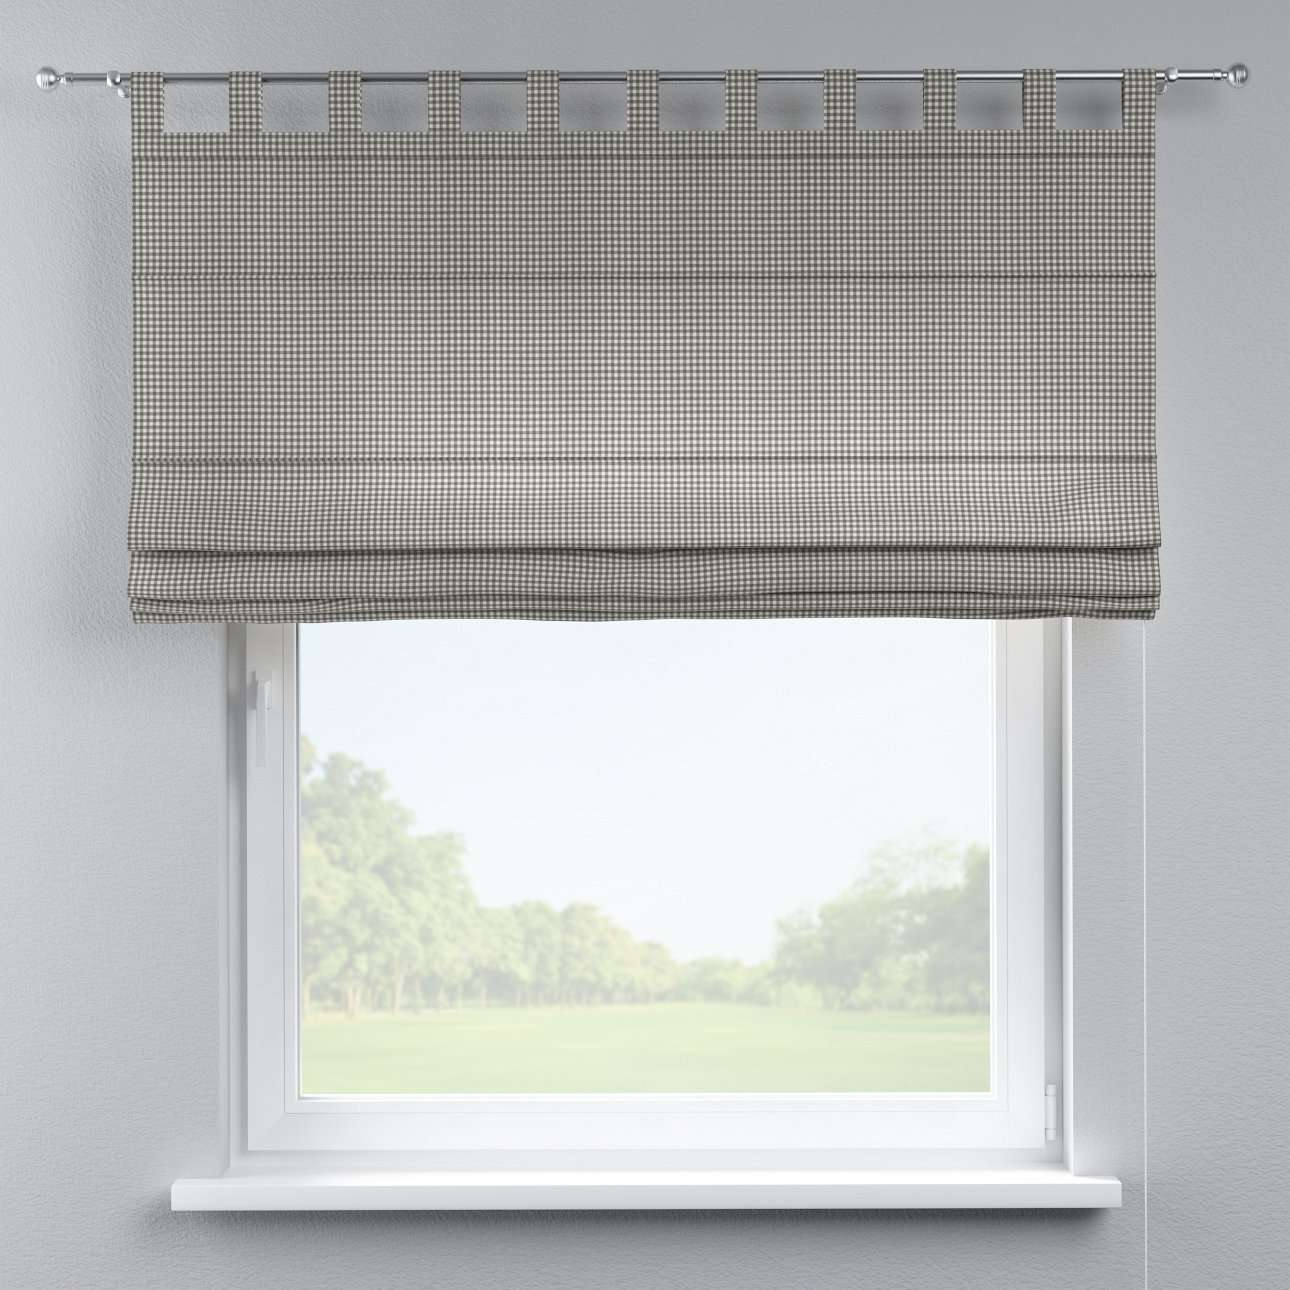 Verona tab top roman blind 80 x 170 cm (31.5 x 67 inch) in collection Quadro, fabric: 136-10